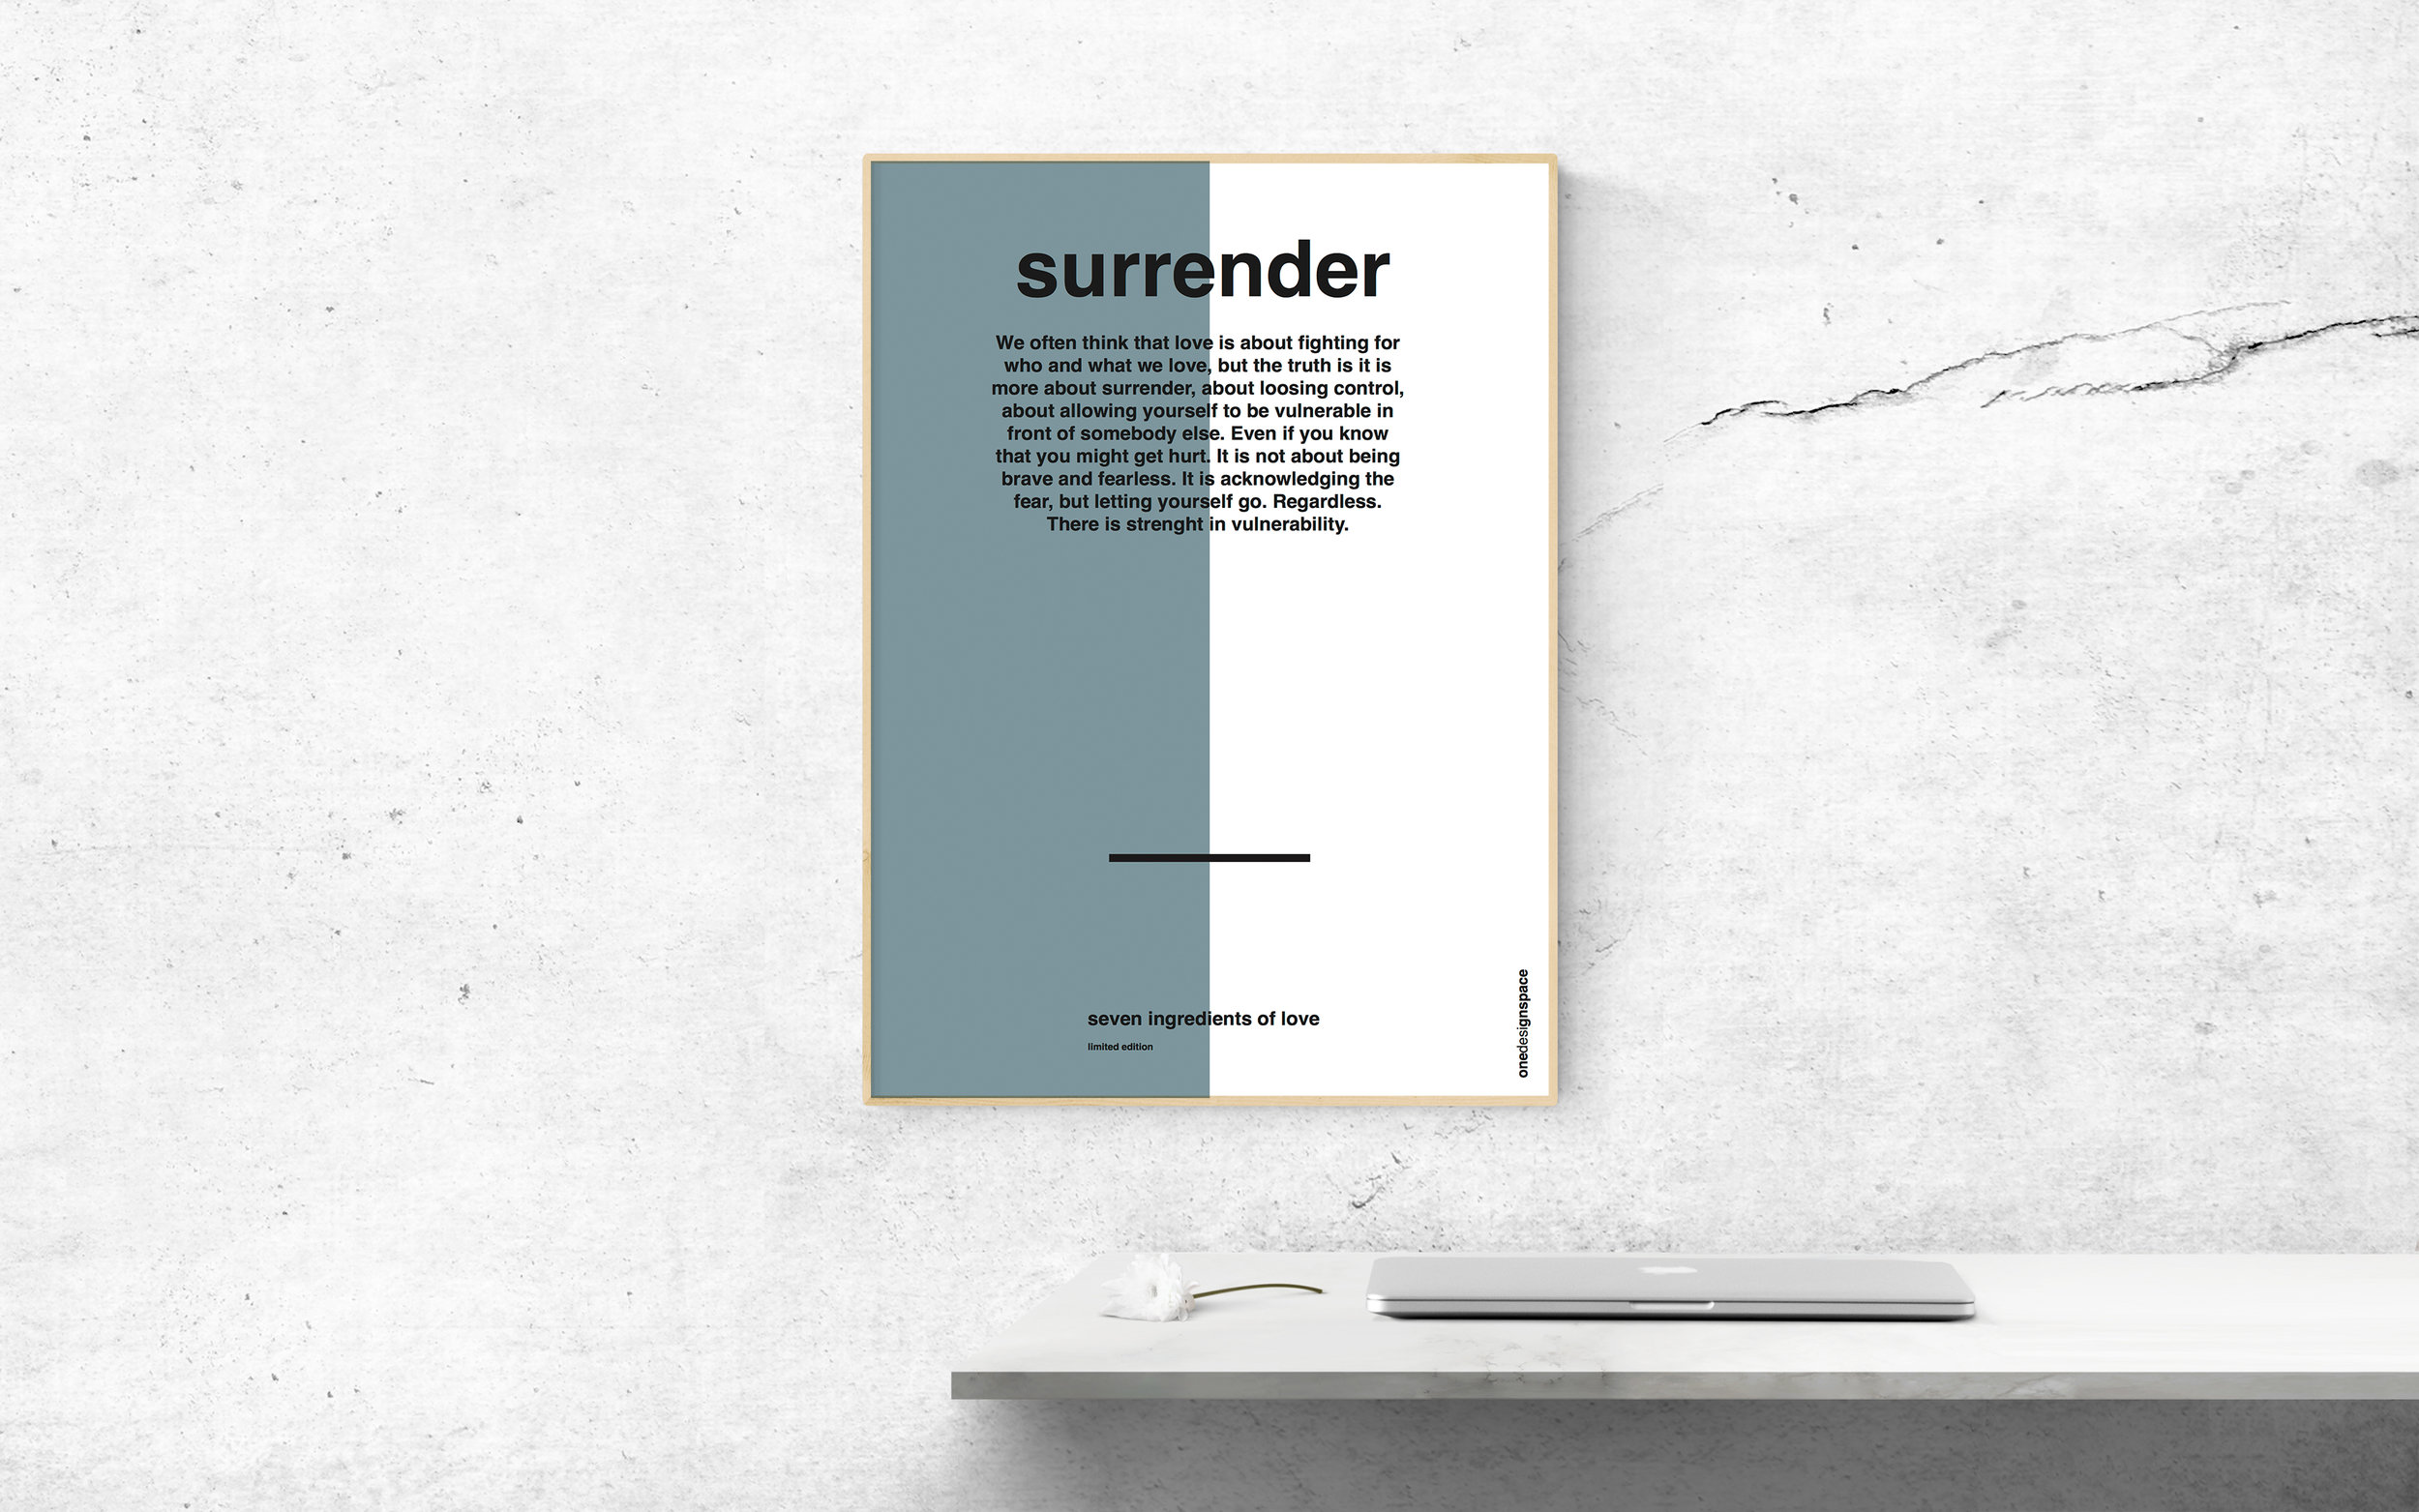 surrender-render.jpg